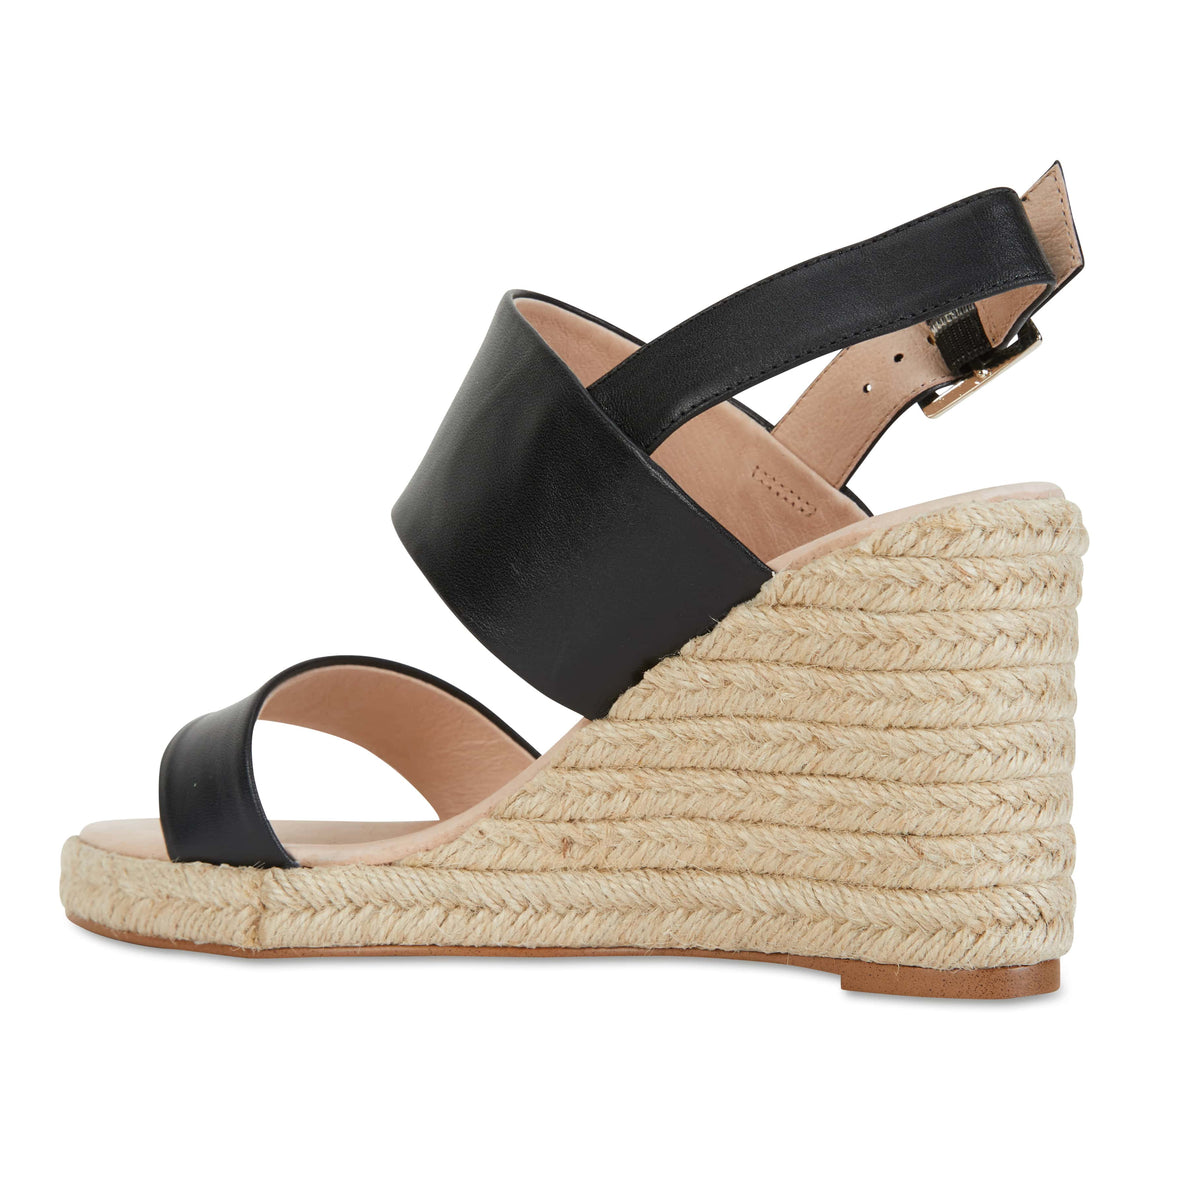 Dice Espadrille in Black Leather